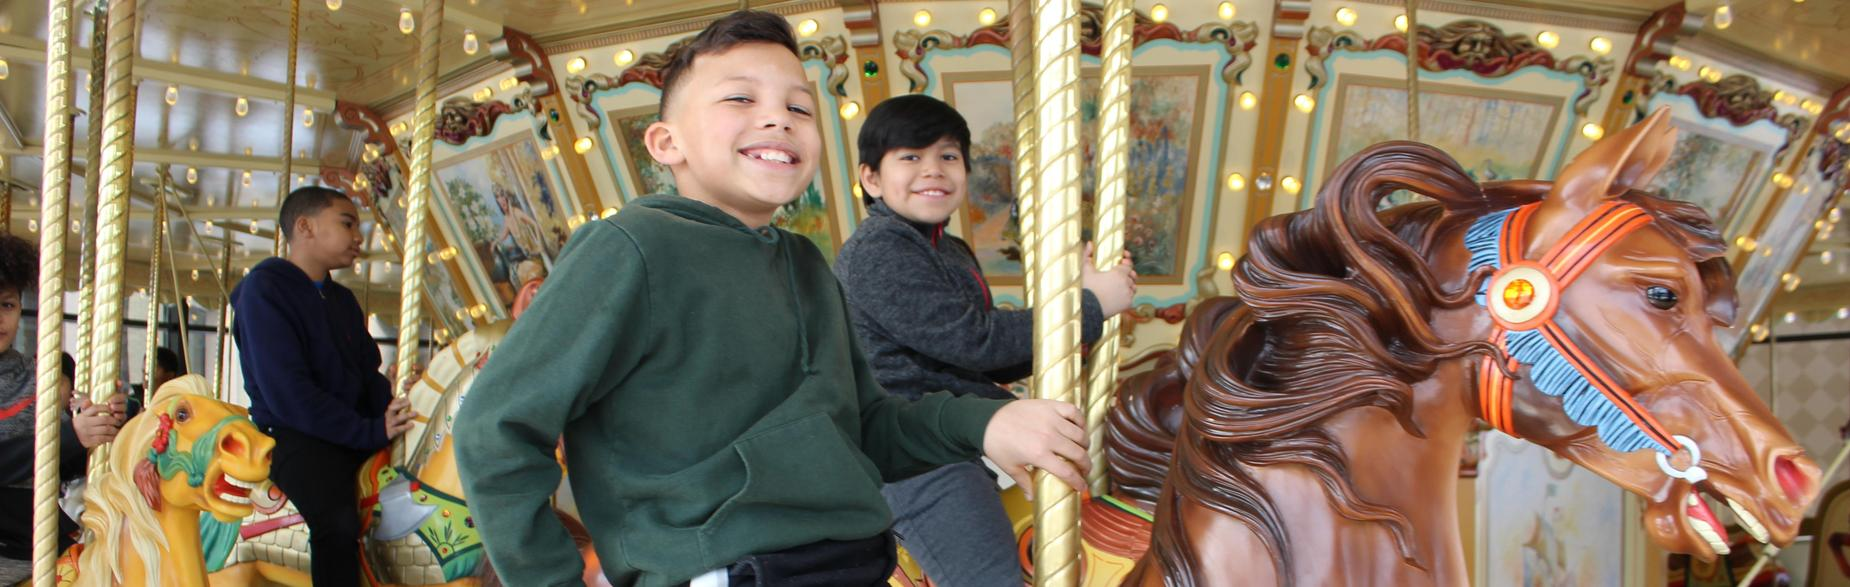 Student riding carousel